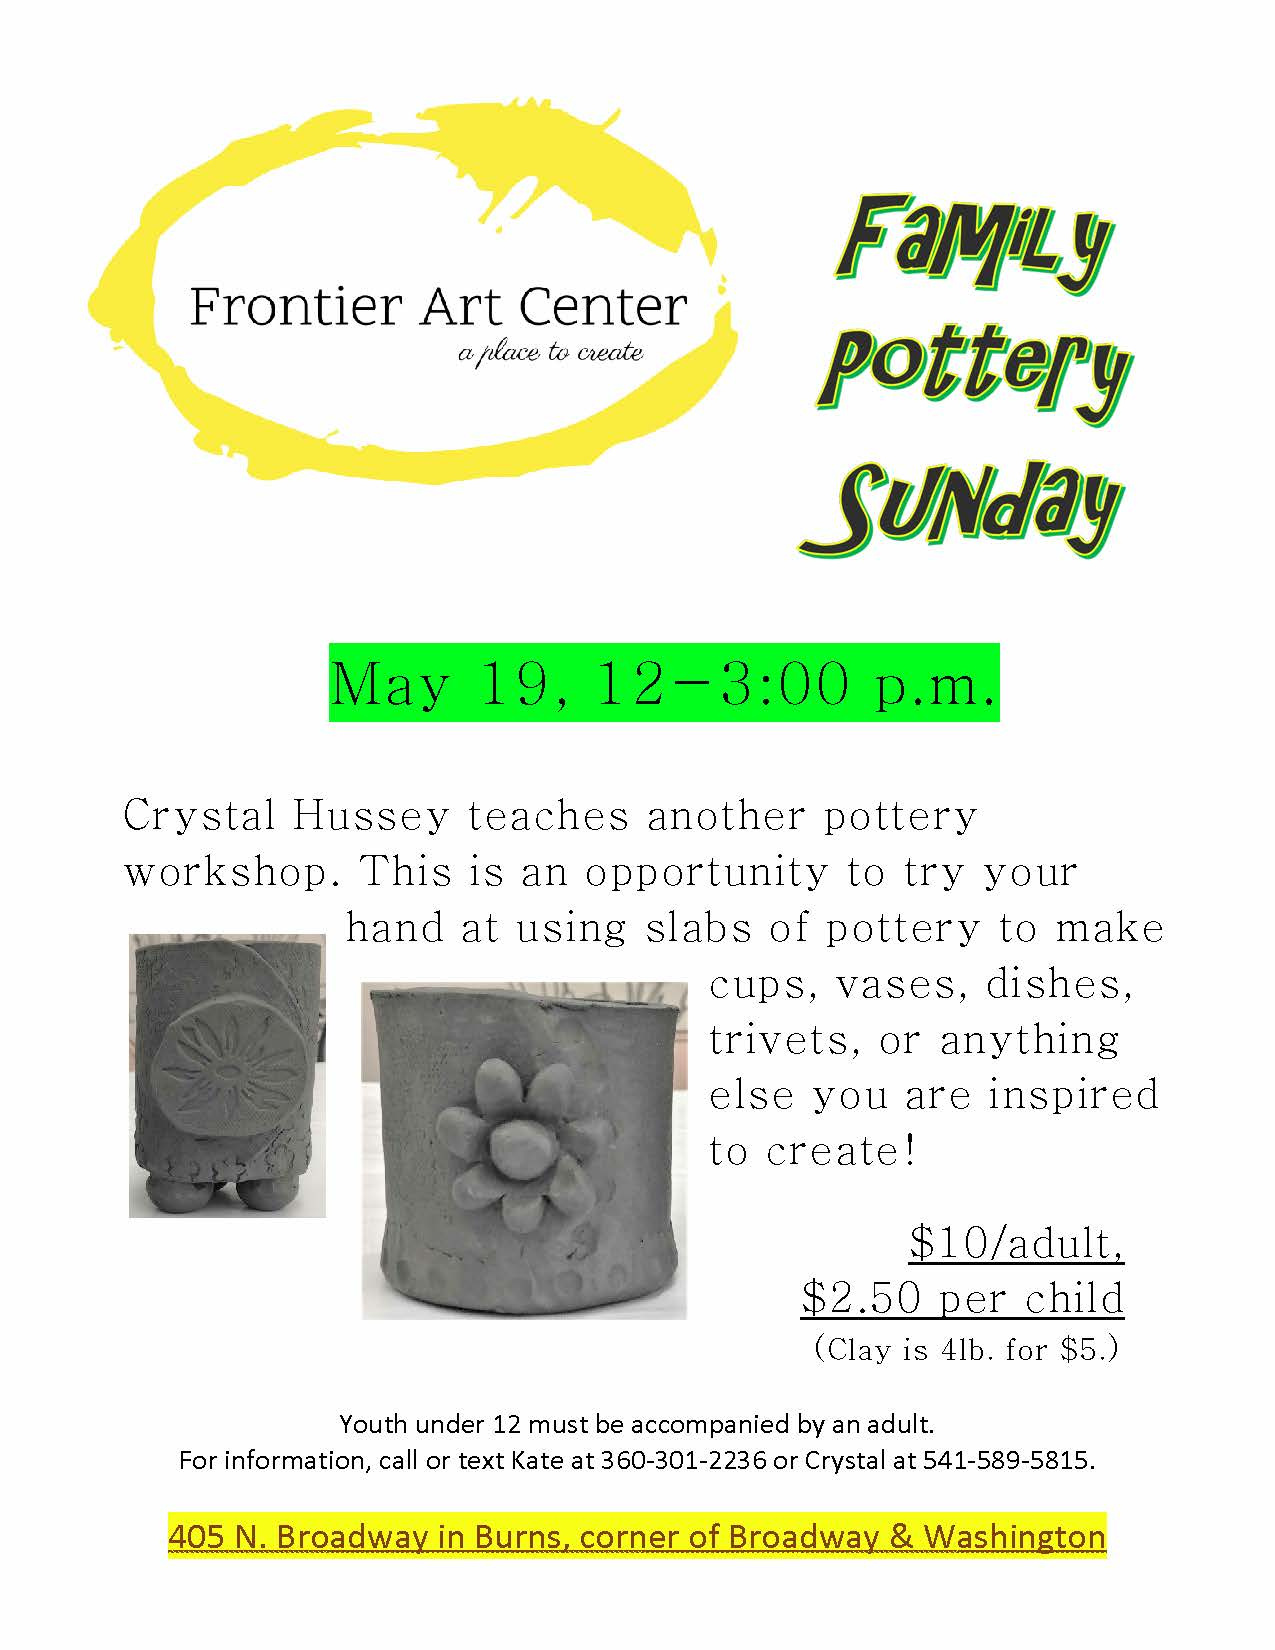 Family Pottery Sunday #3 Flyer.jpg